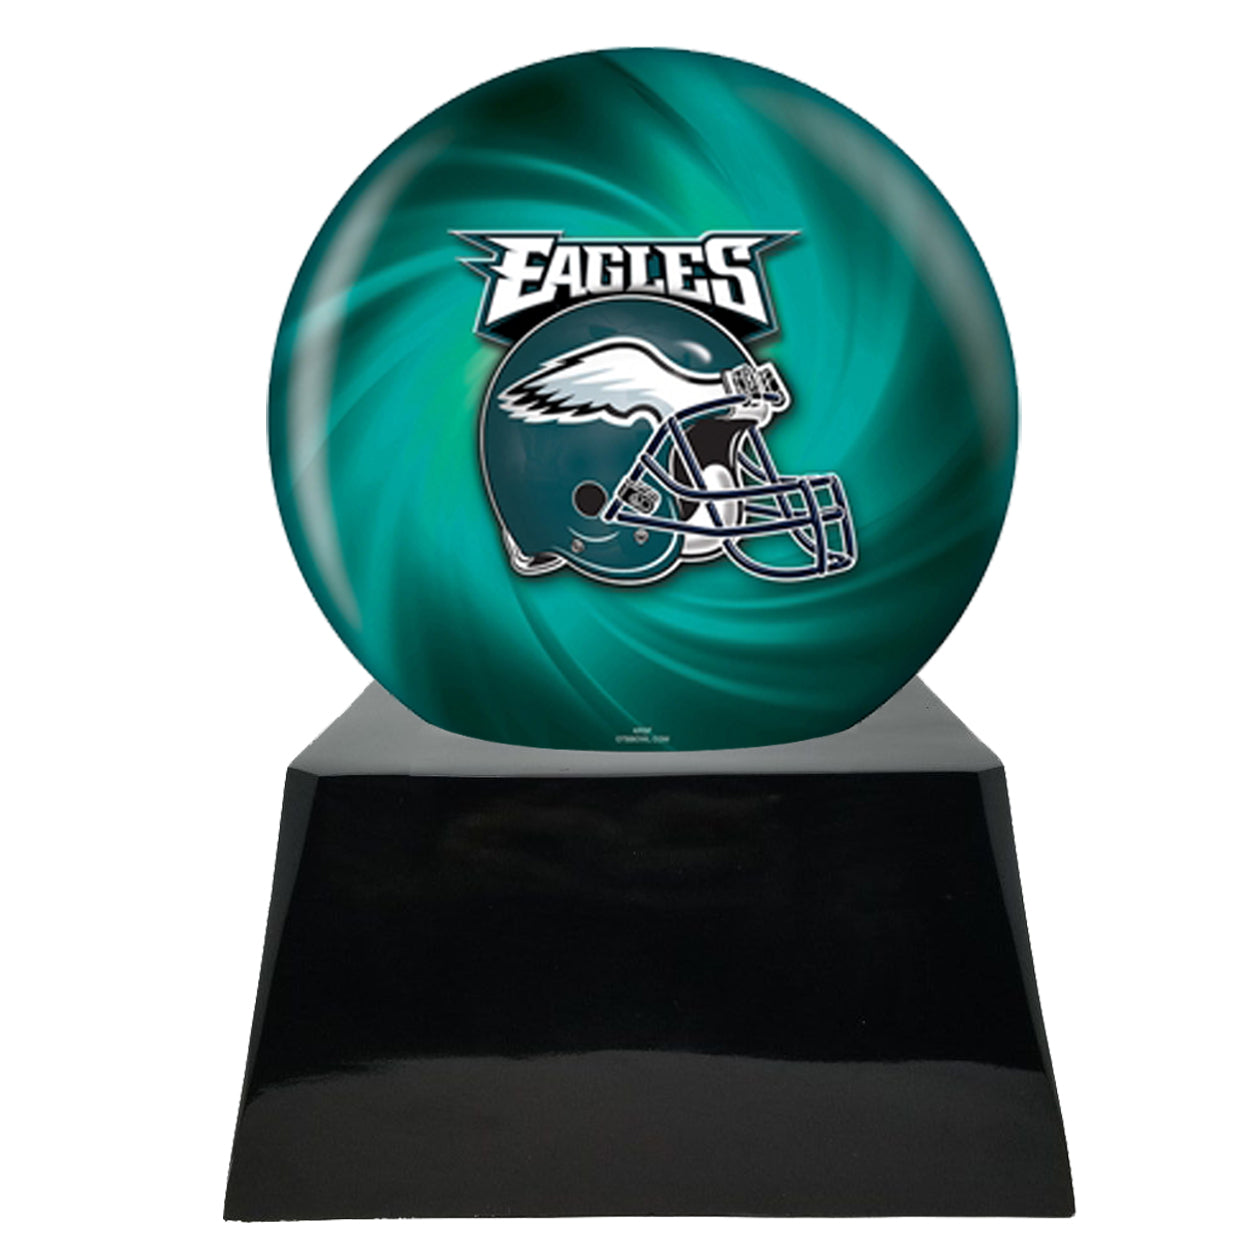 Football Cremation Urn with Optional Philadelphia Eagles Ball Decor and Custom Metal Plaque, Sports Urn - Divinity Urns